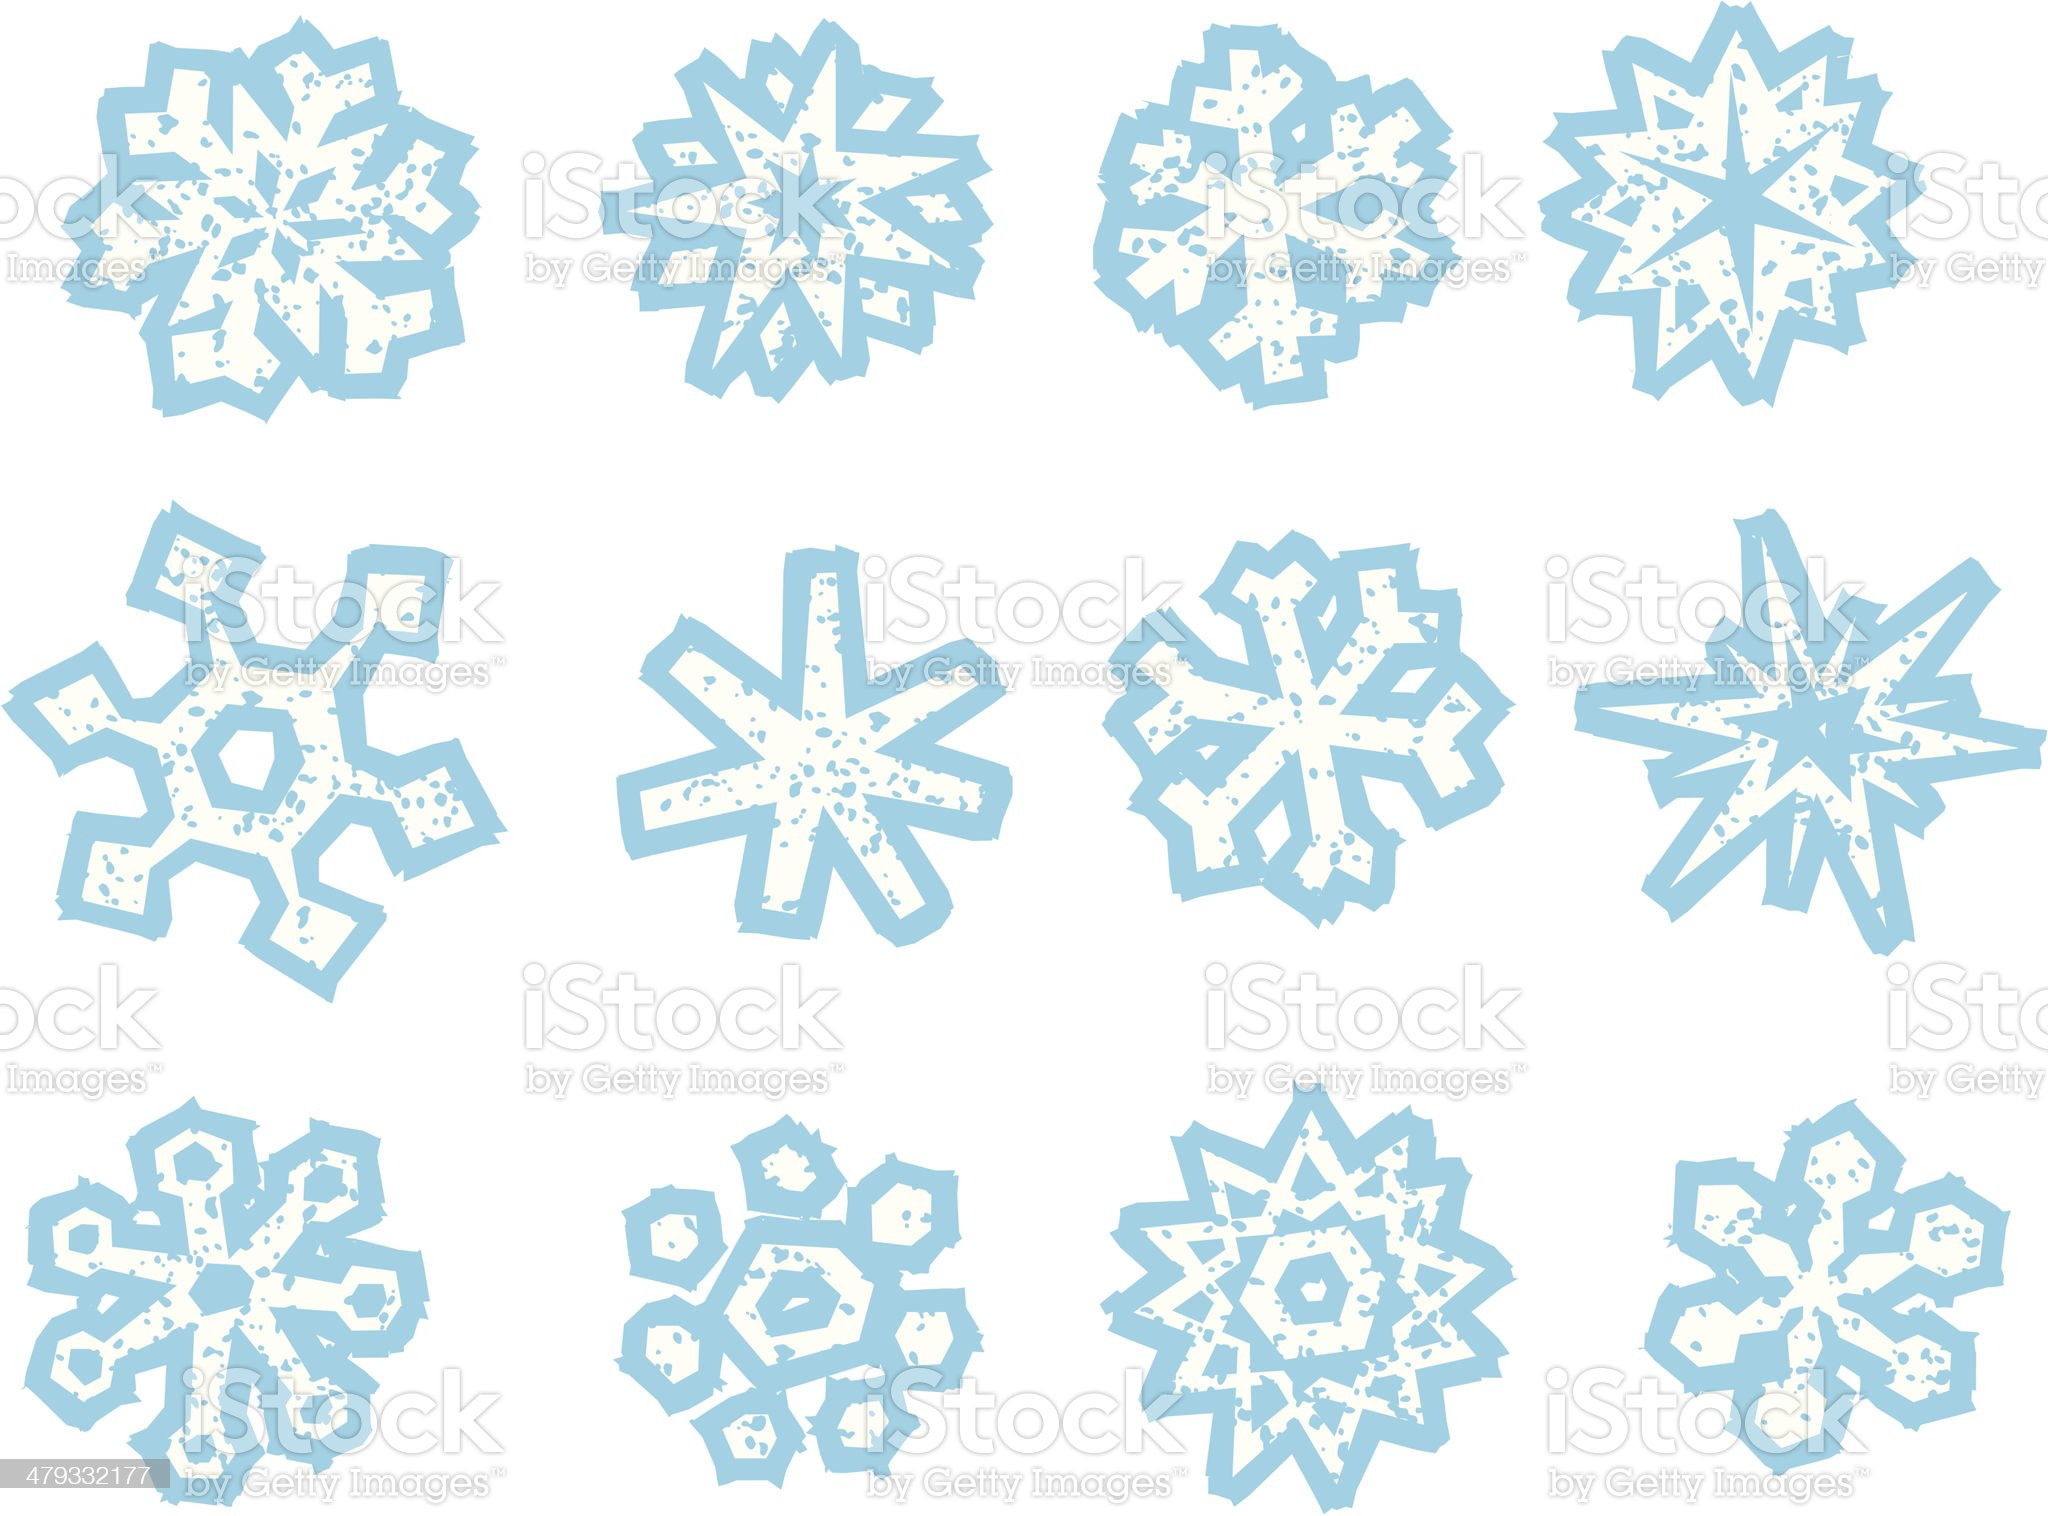 Old Fashion Woodcut (Wicked Worn) Style Snowflakes royalty-free stock vector art